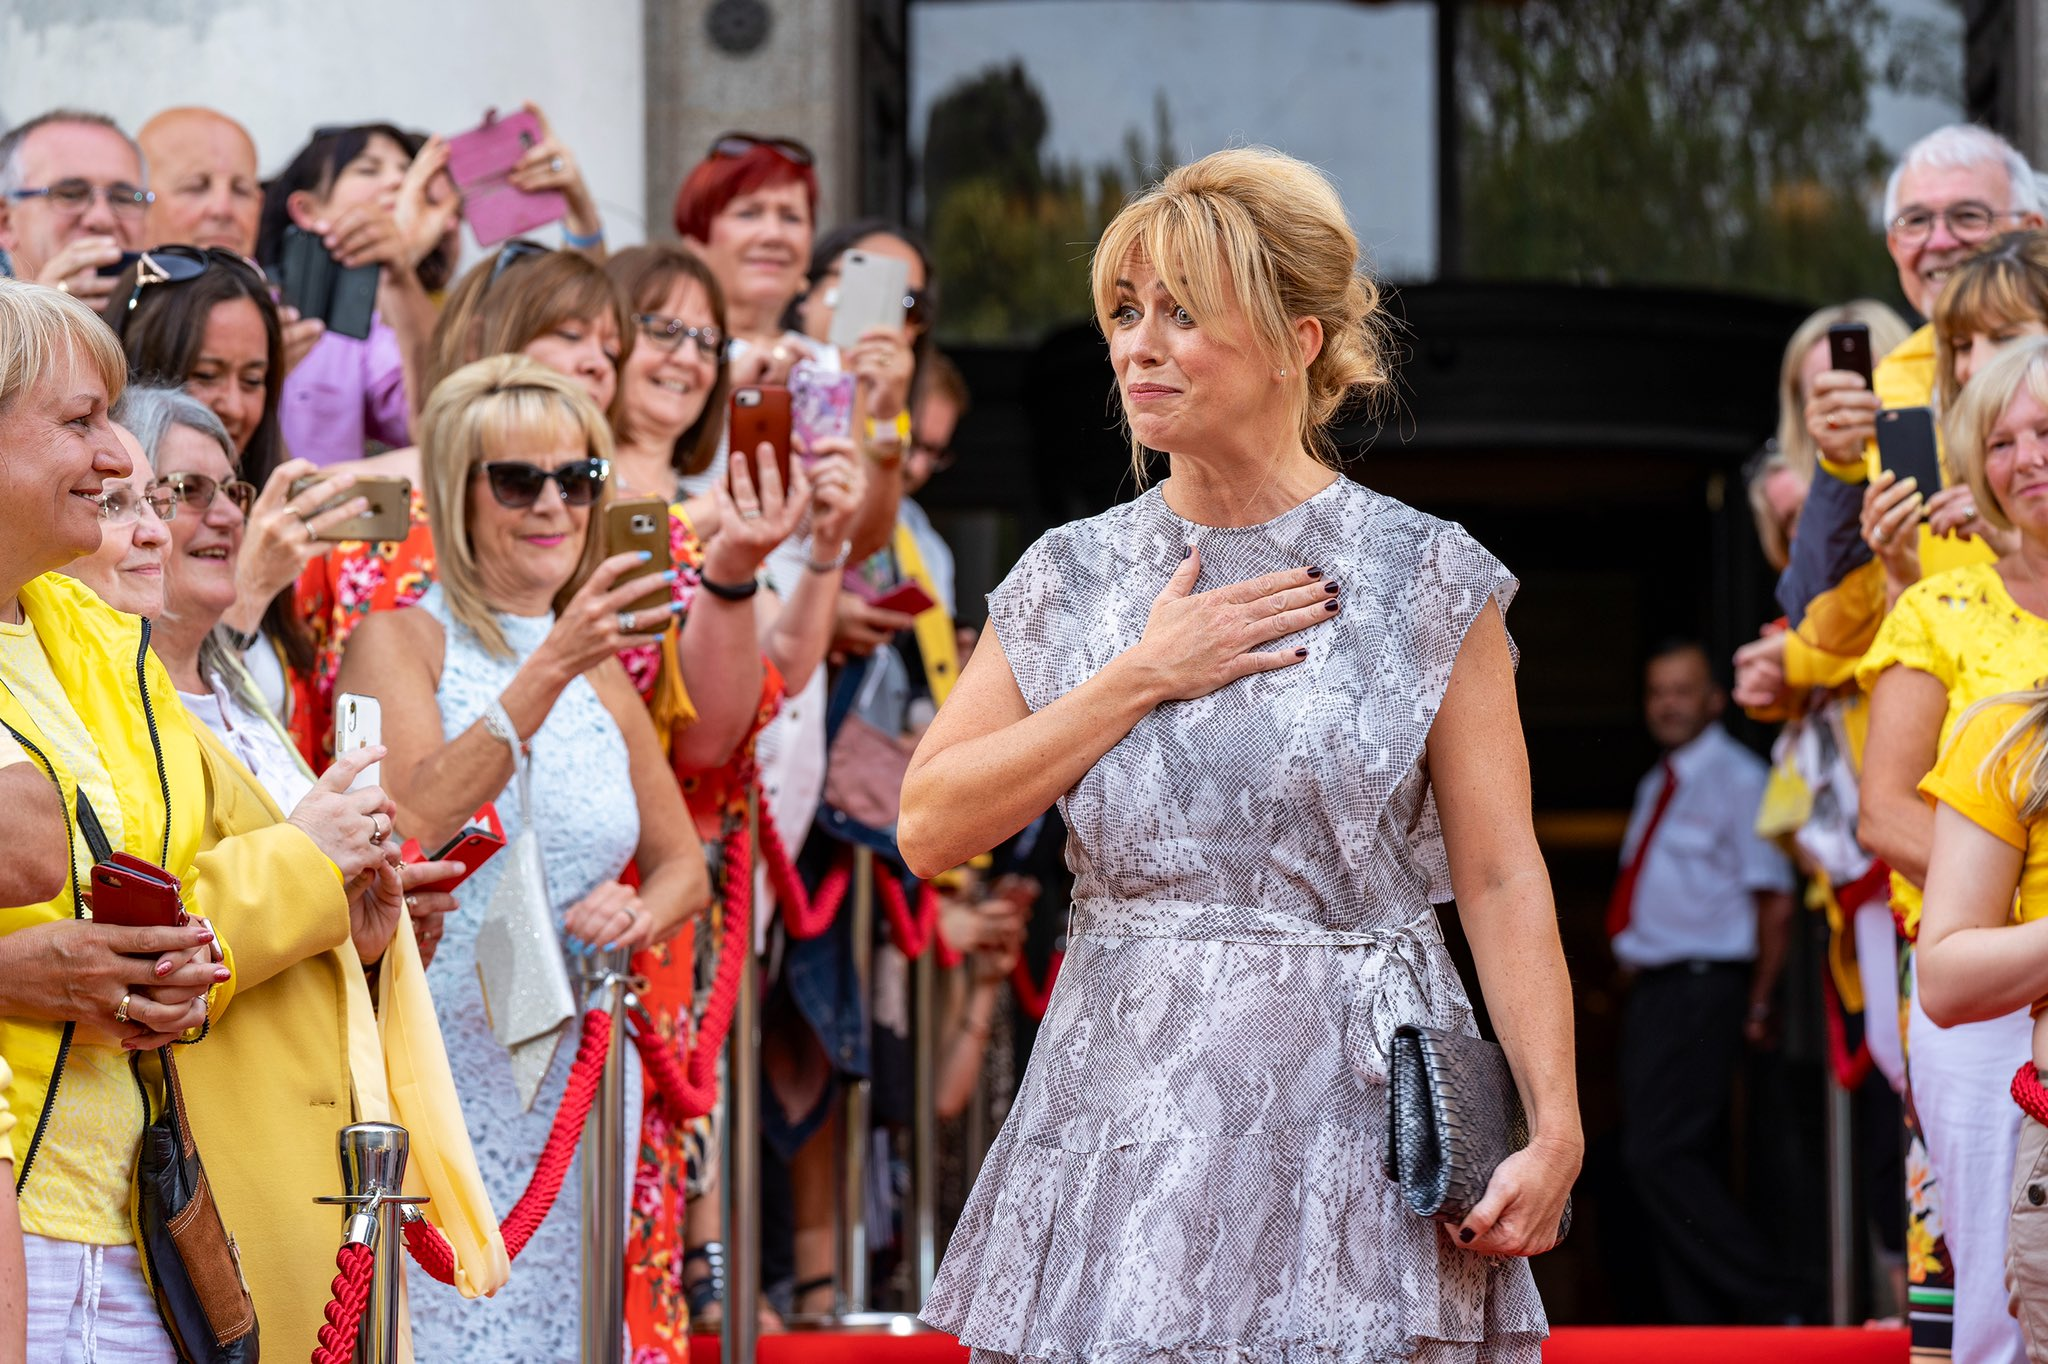 Keeping Faith 2 Premiere Held in Cardiff - Eve Myles and a host of yellow-adorned fans have turned out for the premiere for Keeping Faith (Series 2)!